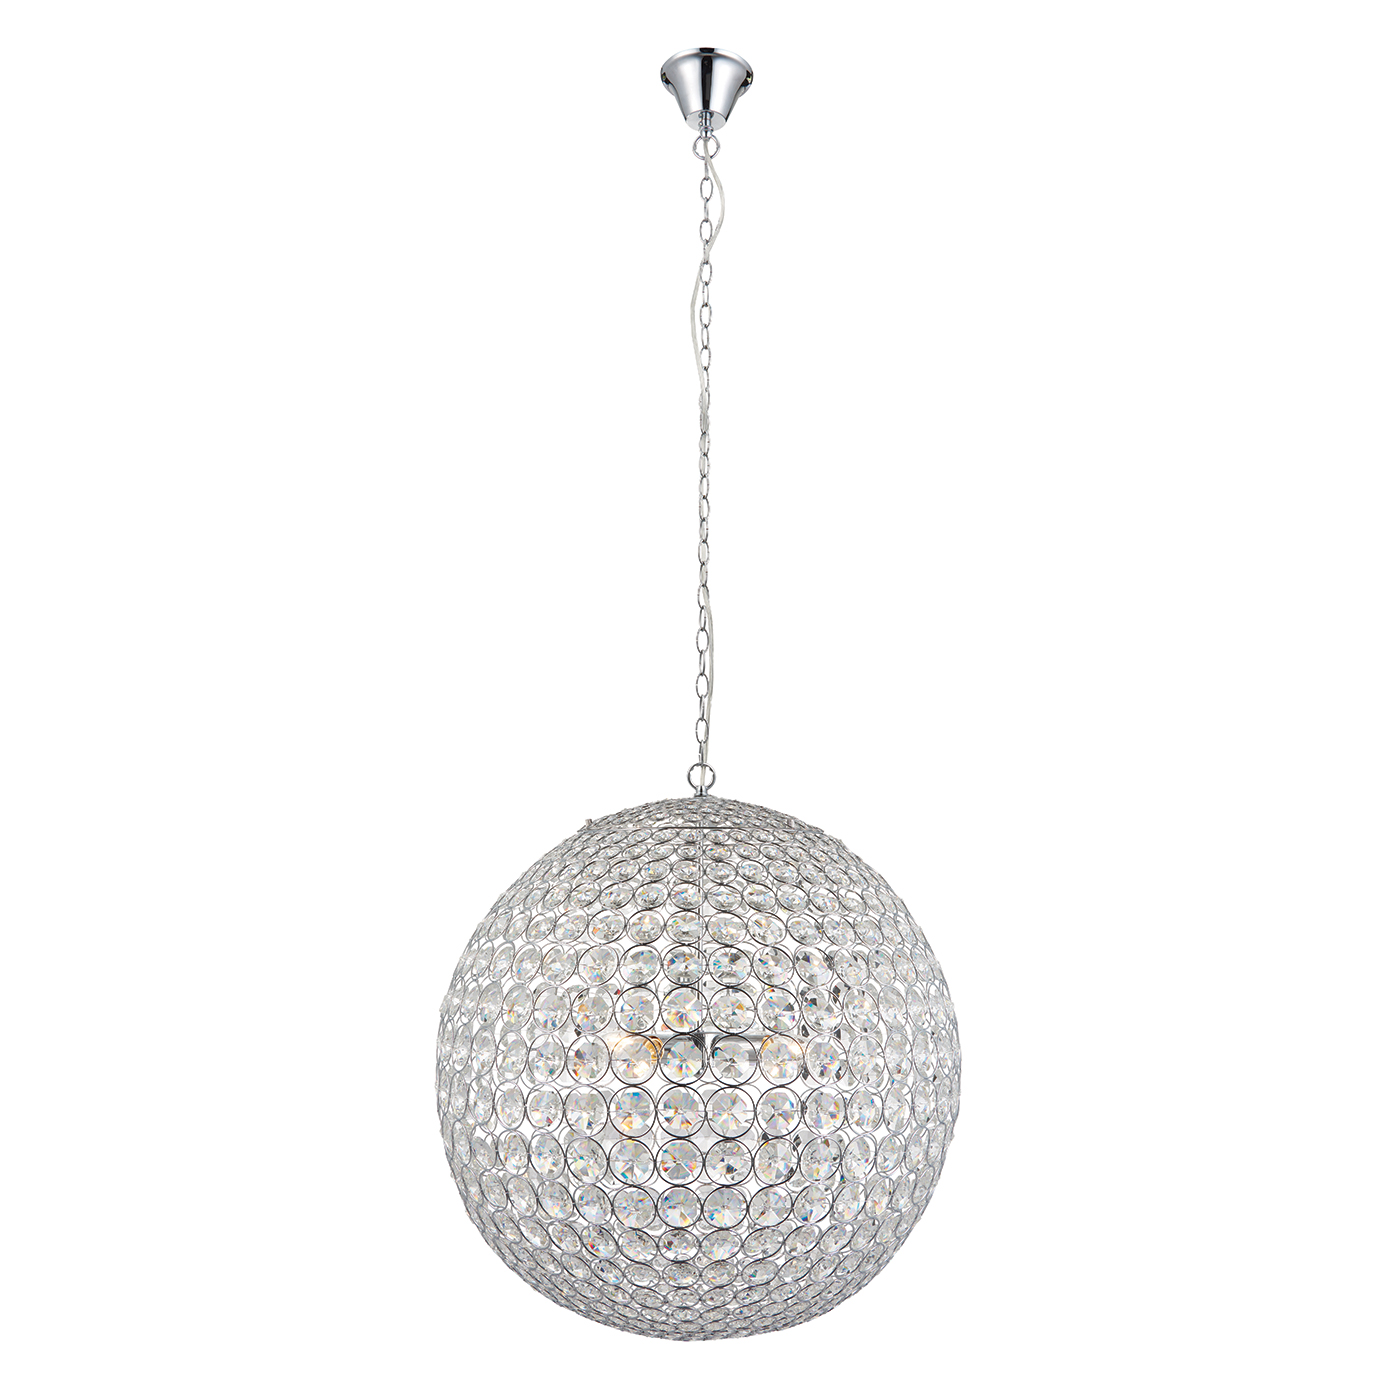 Endon Miley pendant 4x 60W Clear crystal glass detail & chrome effect plate